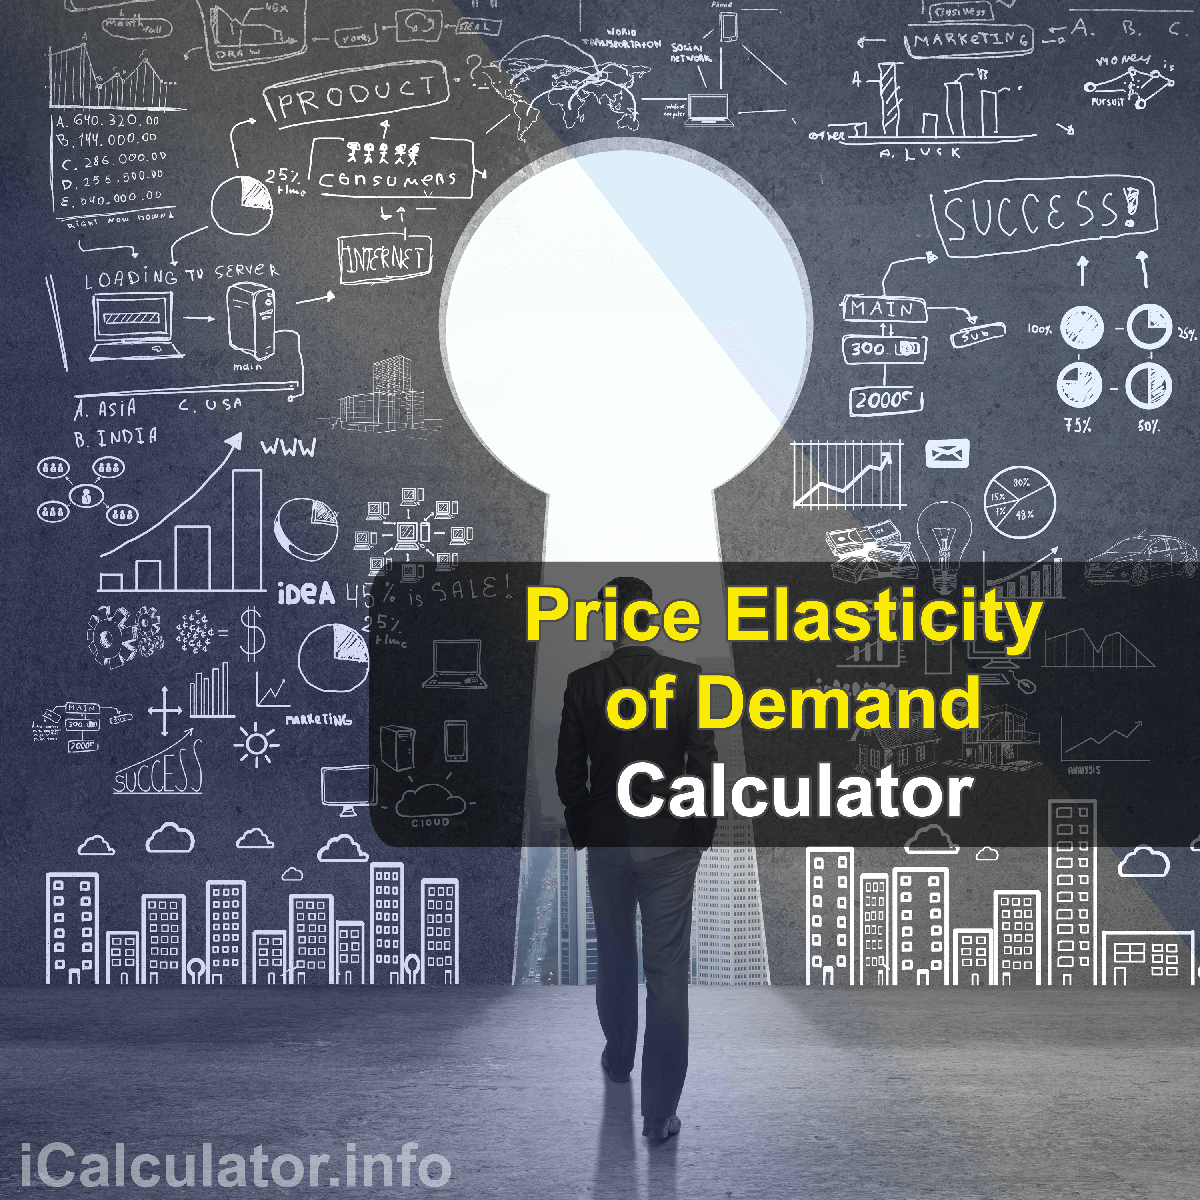 Price Elasticity of Demand Calculator. This image provides details of how to calculate the price elasticity effect of supply and demand using a good calculator and notepad. By using the either of the iprice elasticity formula, the Price Elasticity of Demand Calculator provides a true calculation of how the demand will decrease as the price iss increased and vice-versa.